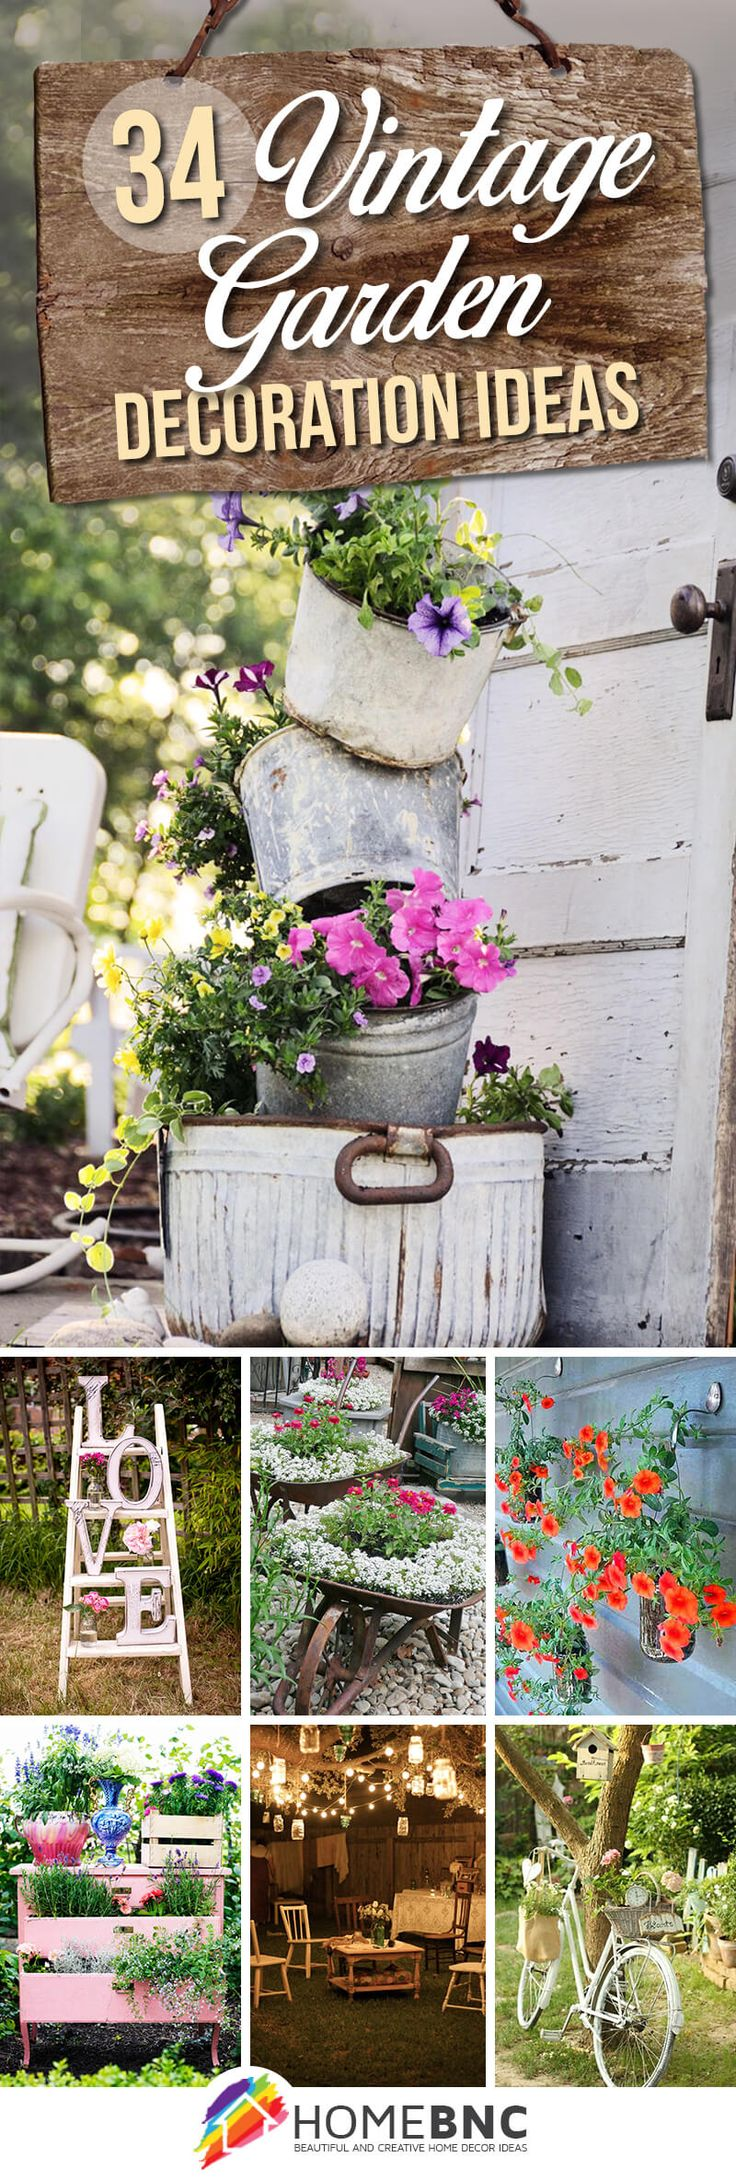 17 best ideas about Vintage Garden Decor on Pinterest Rustic